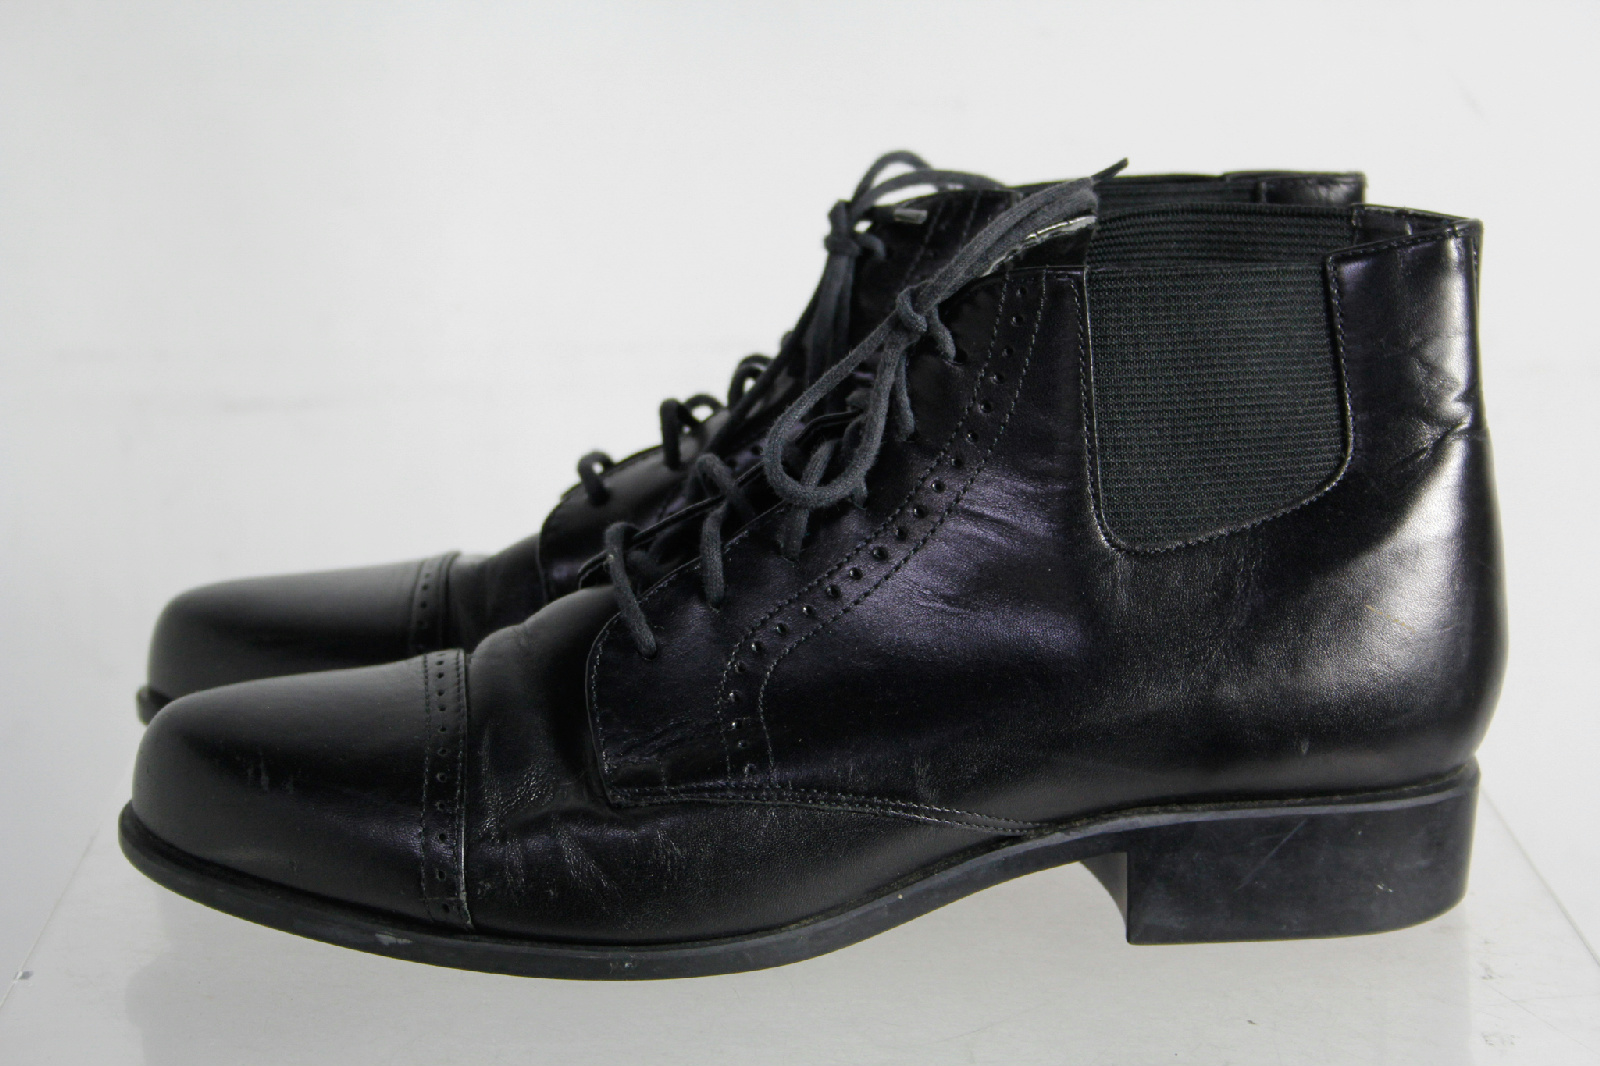 ariat black leather cap toe laces casual boots size 9 ebay